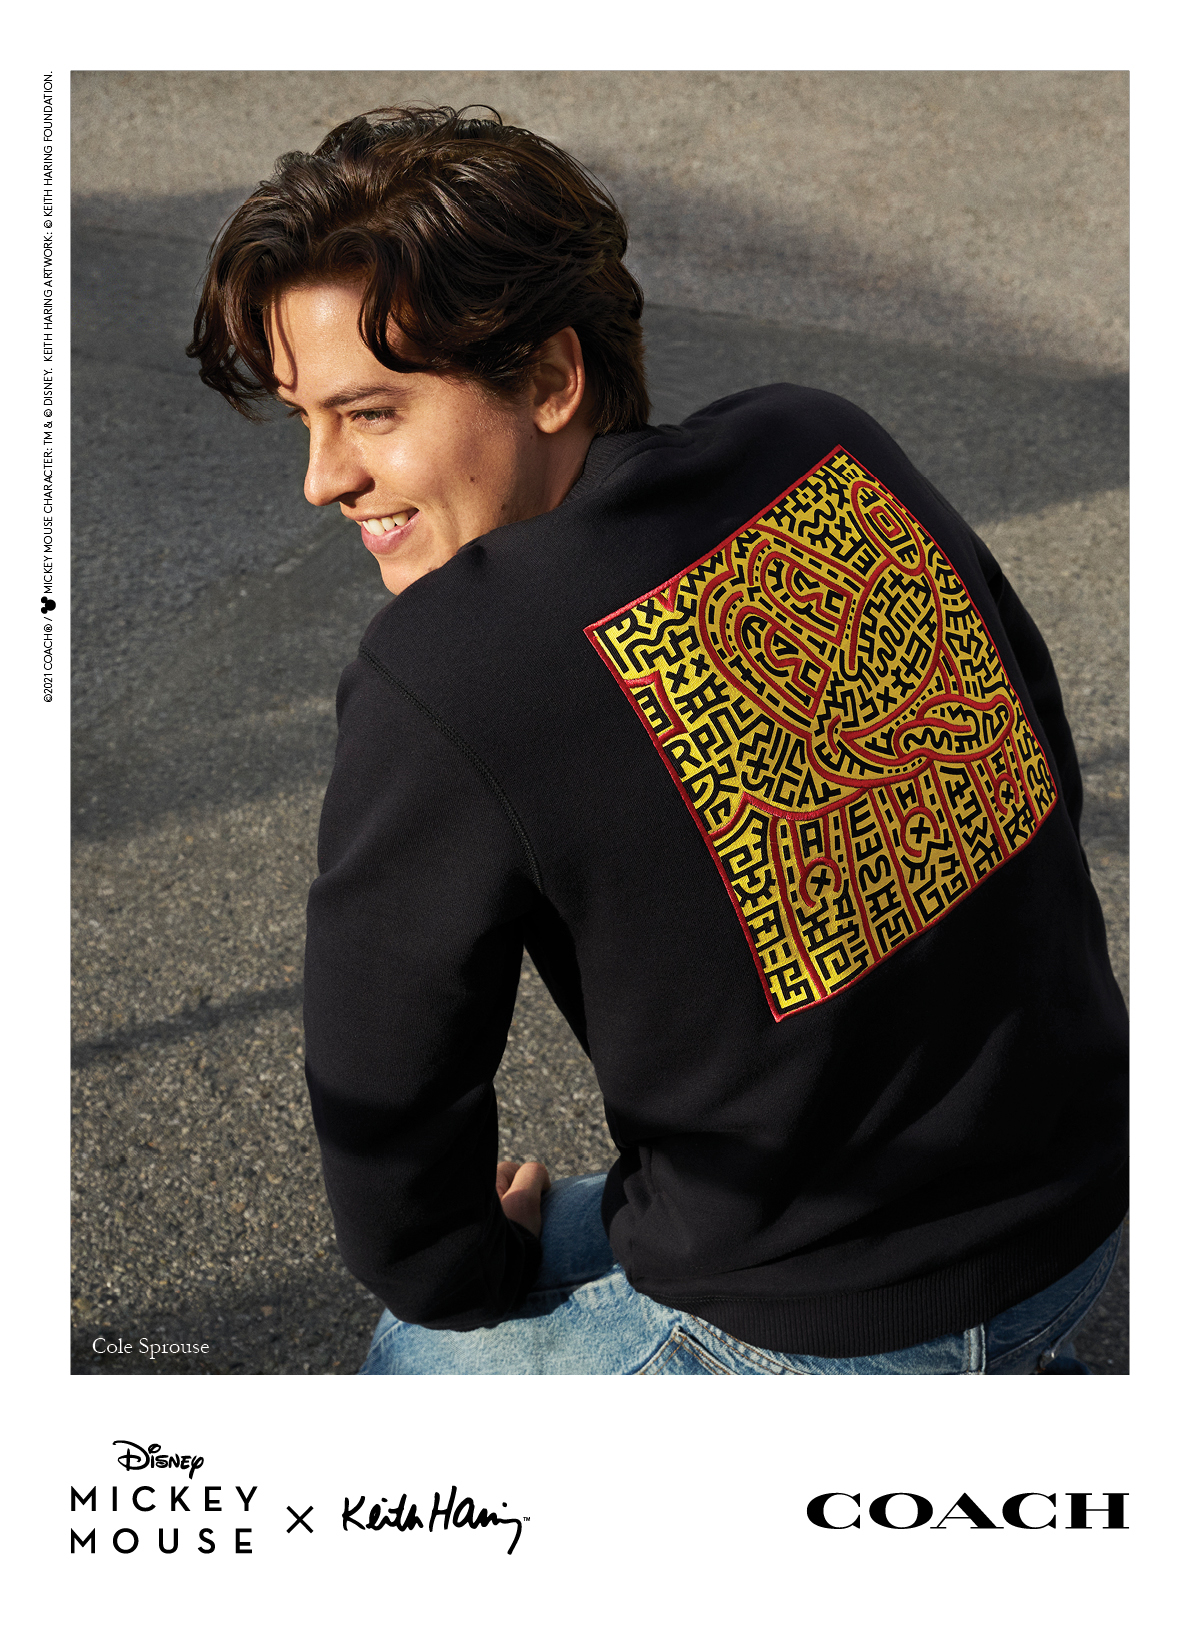 coach Mickey mouse x keith haring Cole Sprouse